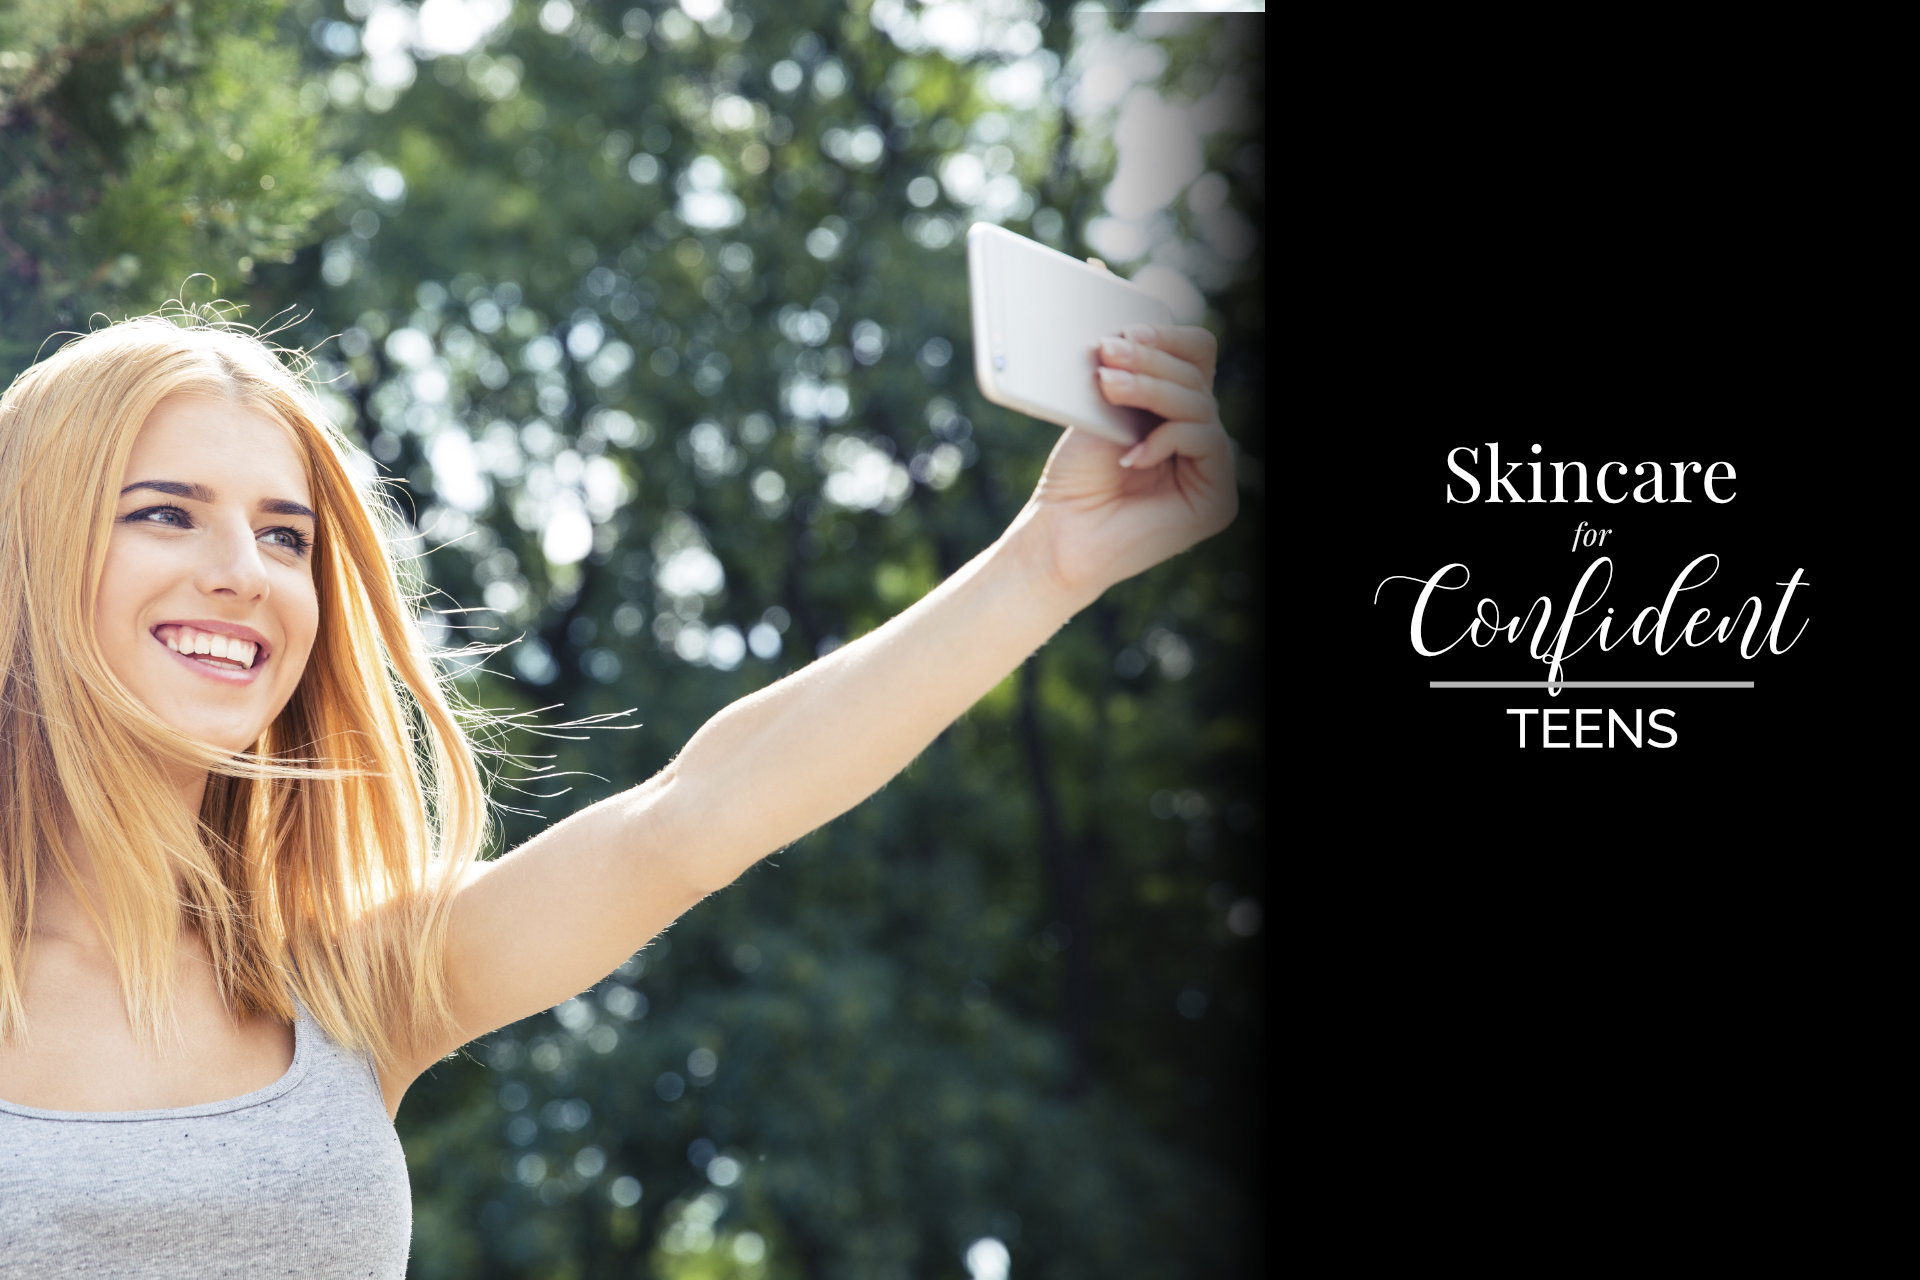 The Best Way To Skincare For Confident Teens